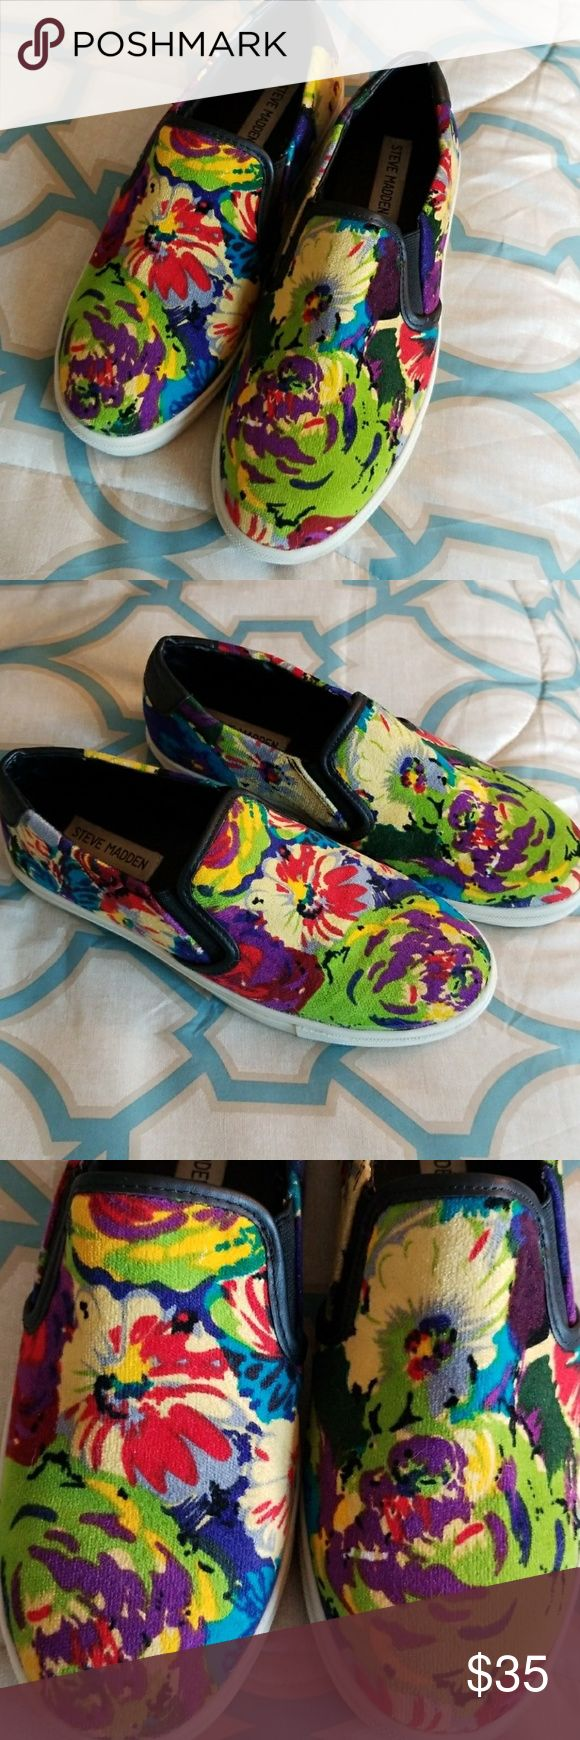 💚Steve Madden Slip-On Sneakers. 💜💛Encentrcv Steve Madden Slip-On Sneakers.💜💛 A vivid flower print that blooms on a relaxed slip-on sneaker with a thick wrap around sole.   💙Such a cute summer shoe that goes with virtually anything!💙 Amazing condition!  I haven't been able 2 find these in stock in stores!   This is a re-posh as they are a tad on the snug size 4 me.   Thanks so much 4 looking! 😊 Steve Madden Shoes Flats & Loafers